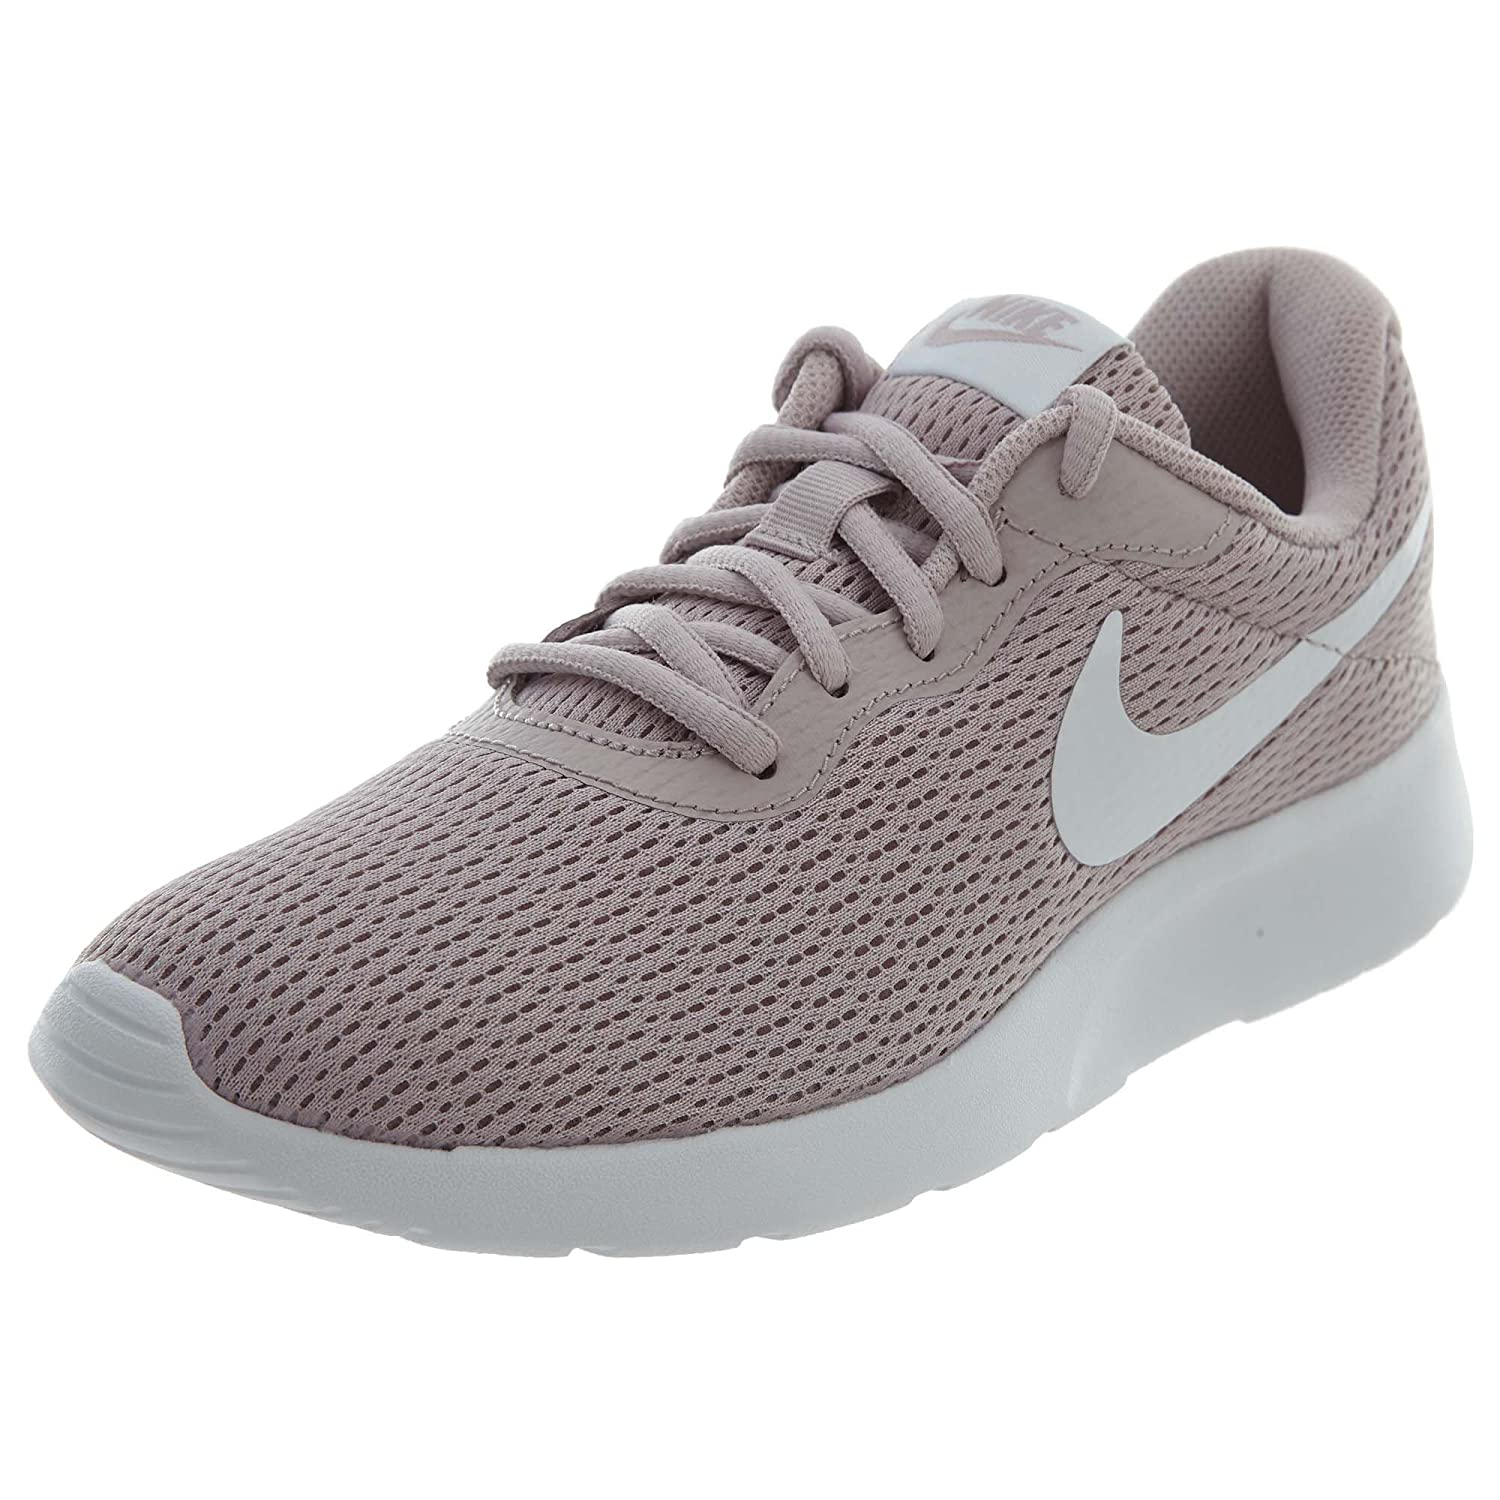 NIKE Women's Tanjun Running Shoes B071HG4G7L 10 B(M) US|Particle Rose / White